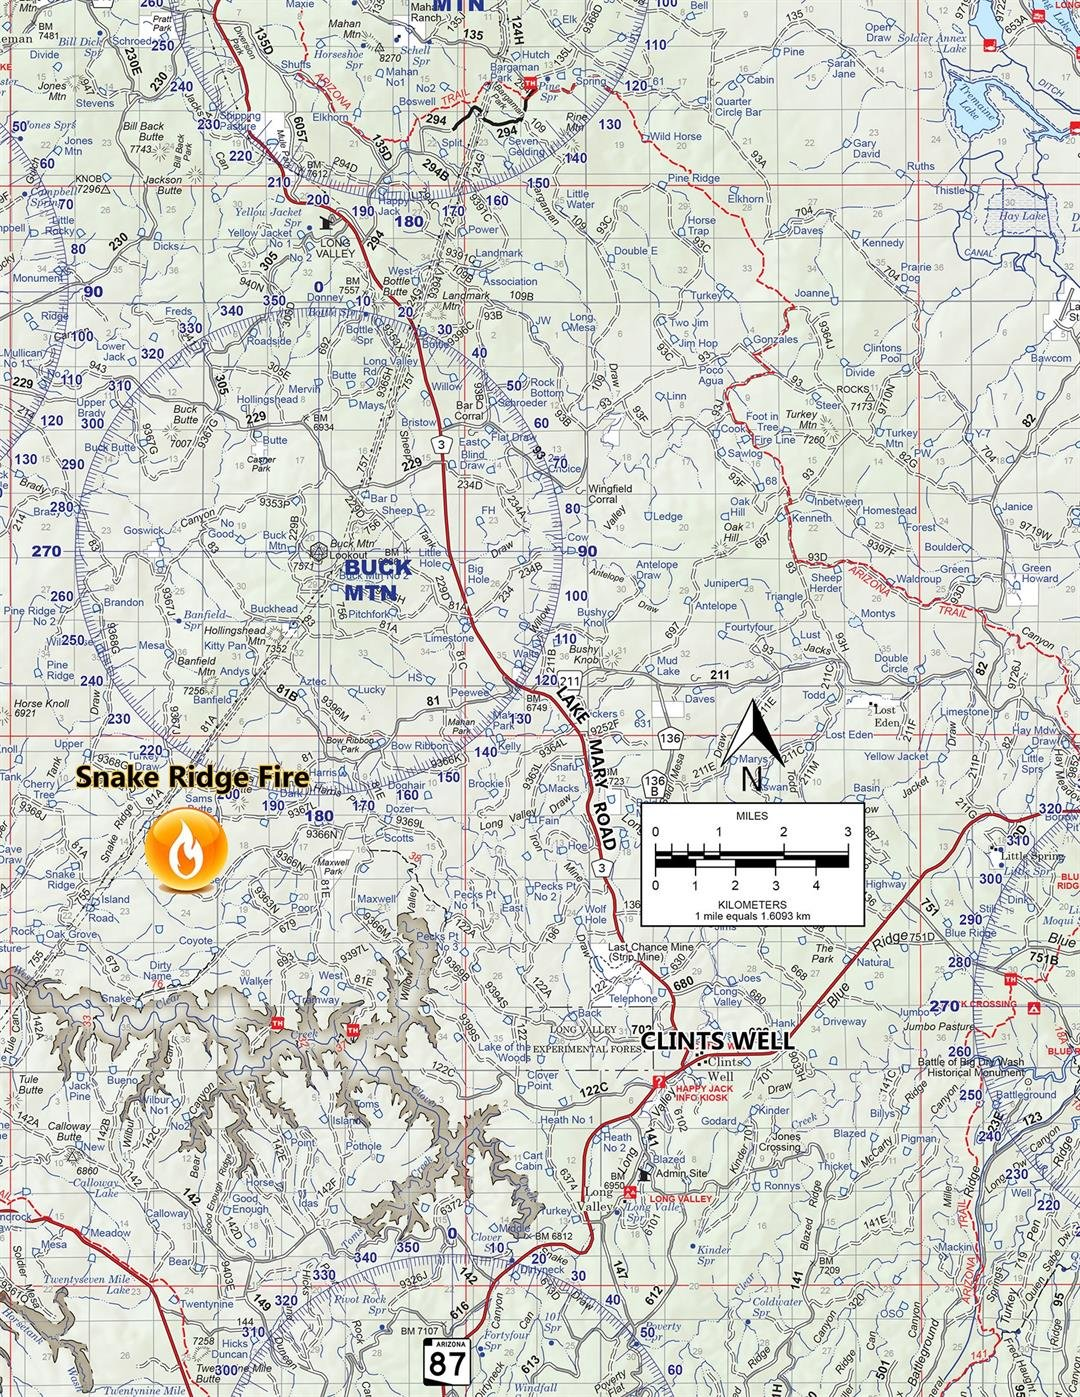 Location of the Snake Ridge Fire. (Source: Coconino National Forest)